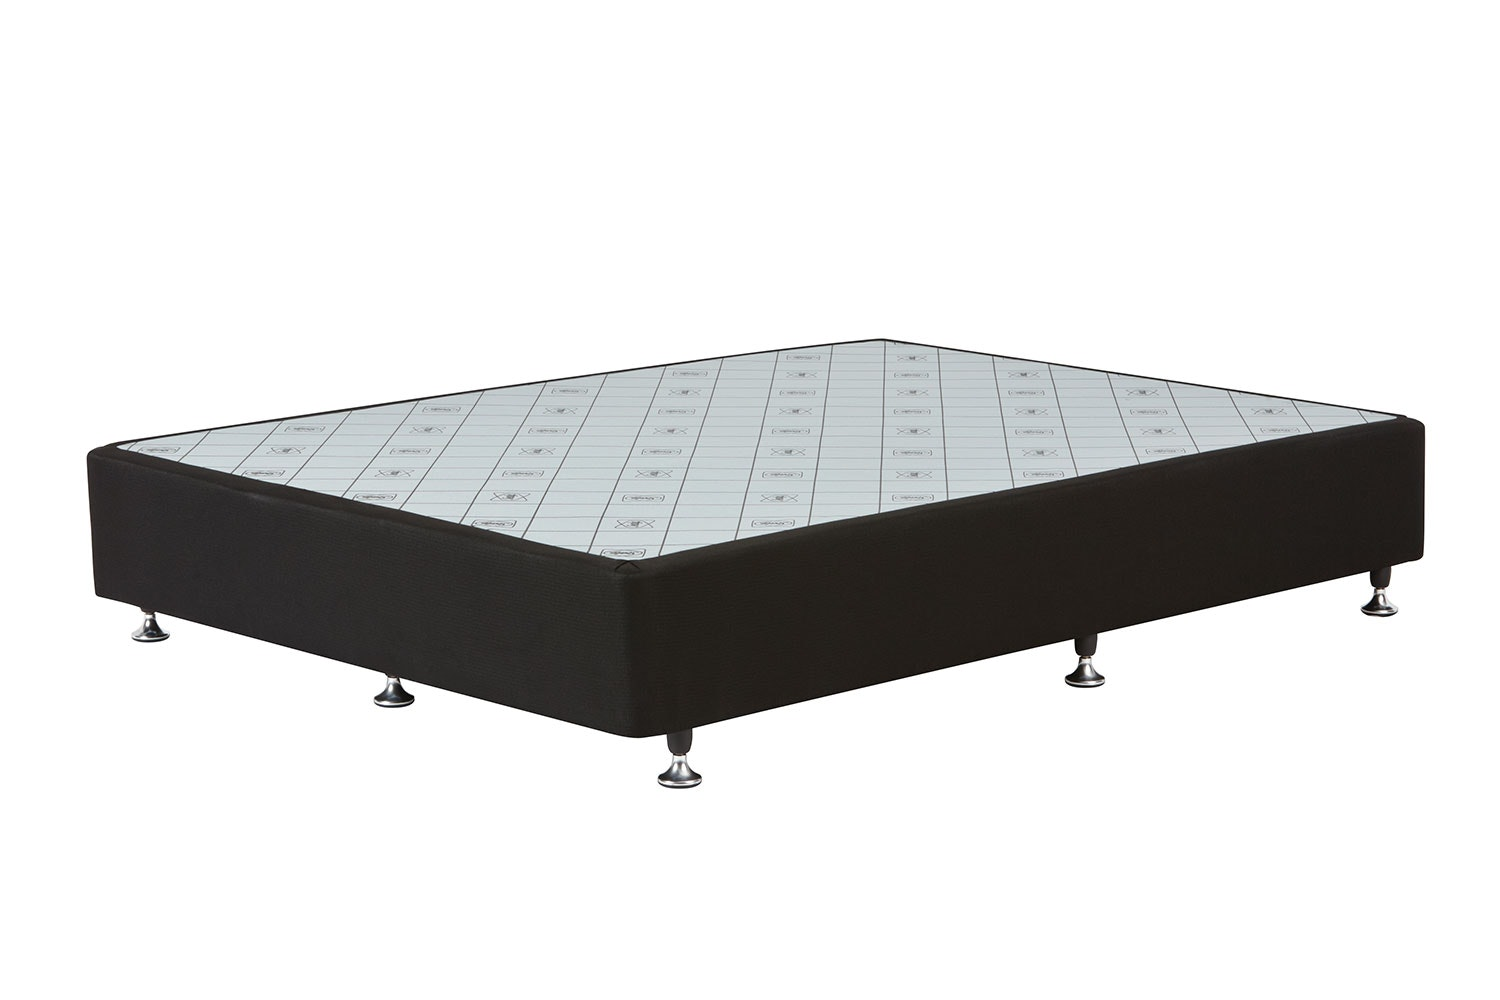 Platform Queen Standard Base by Sealy